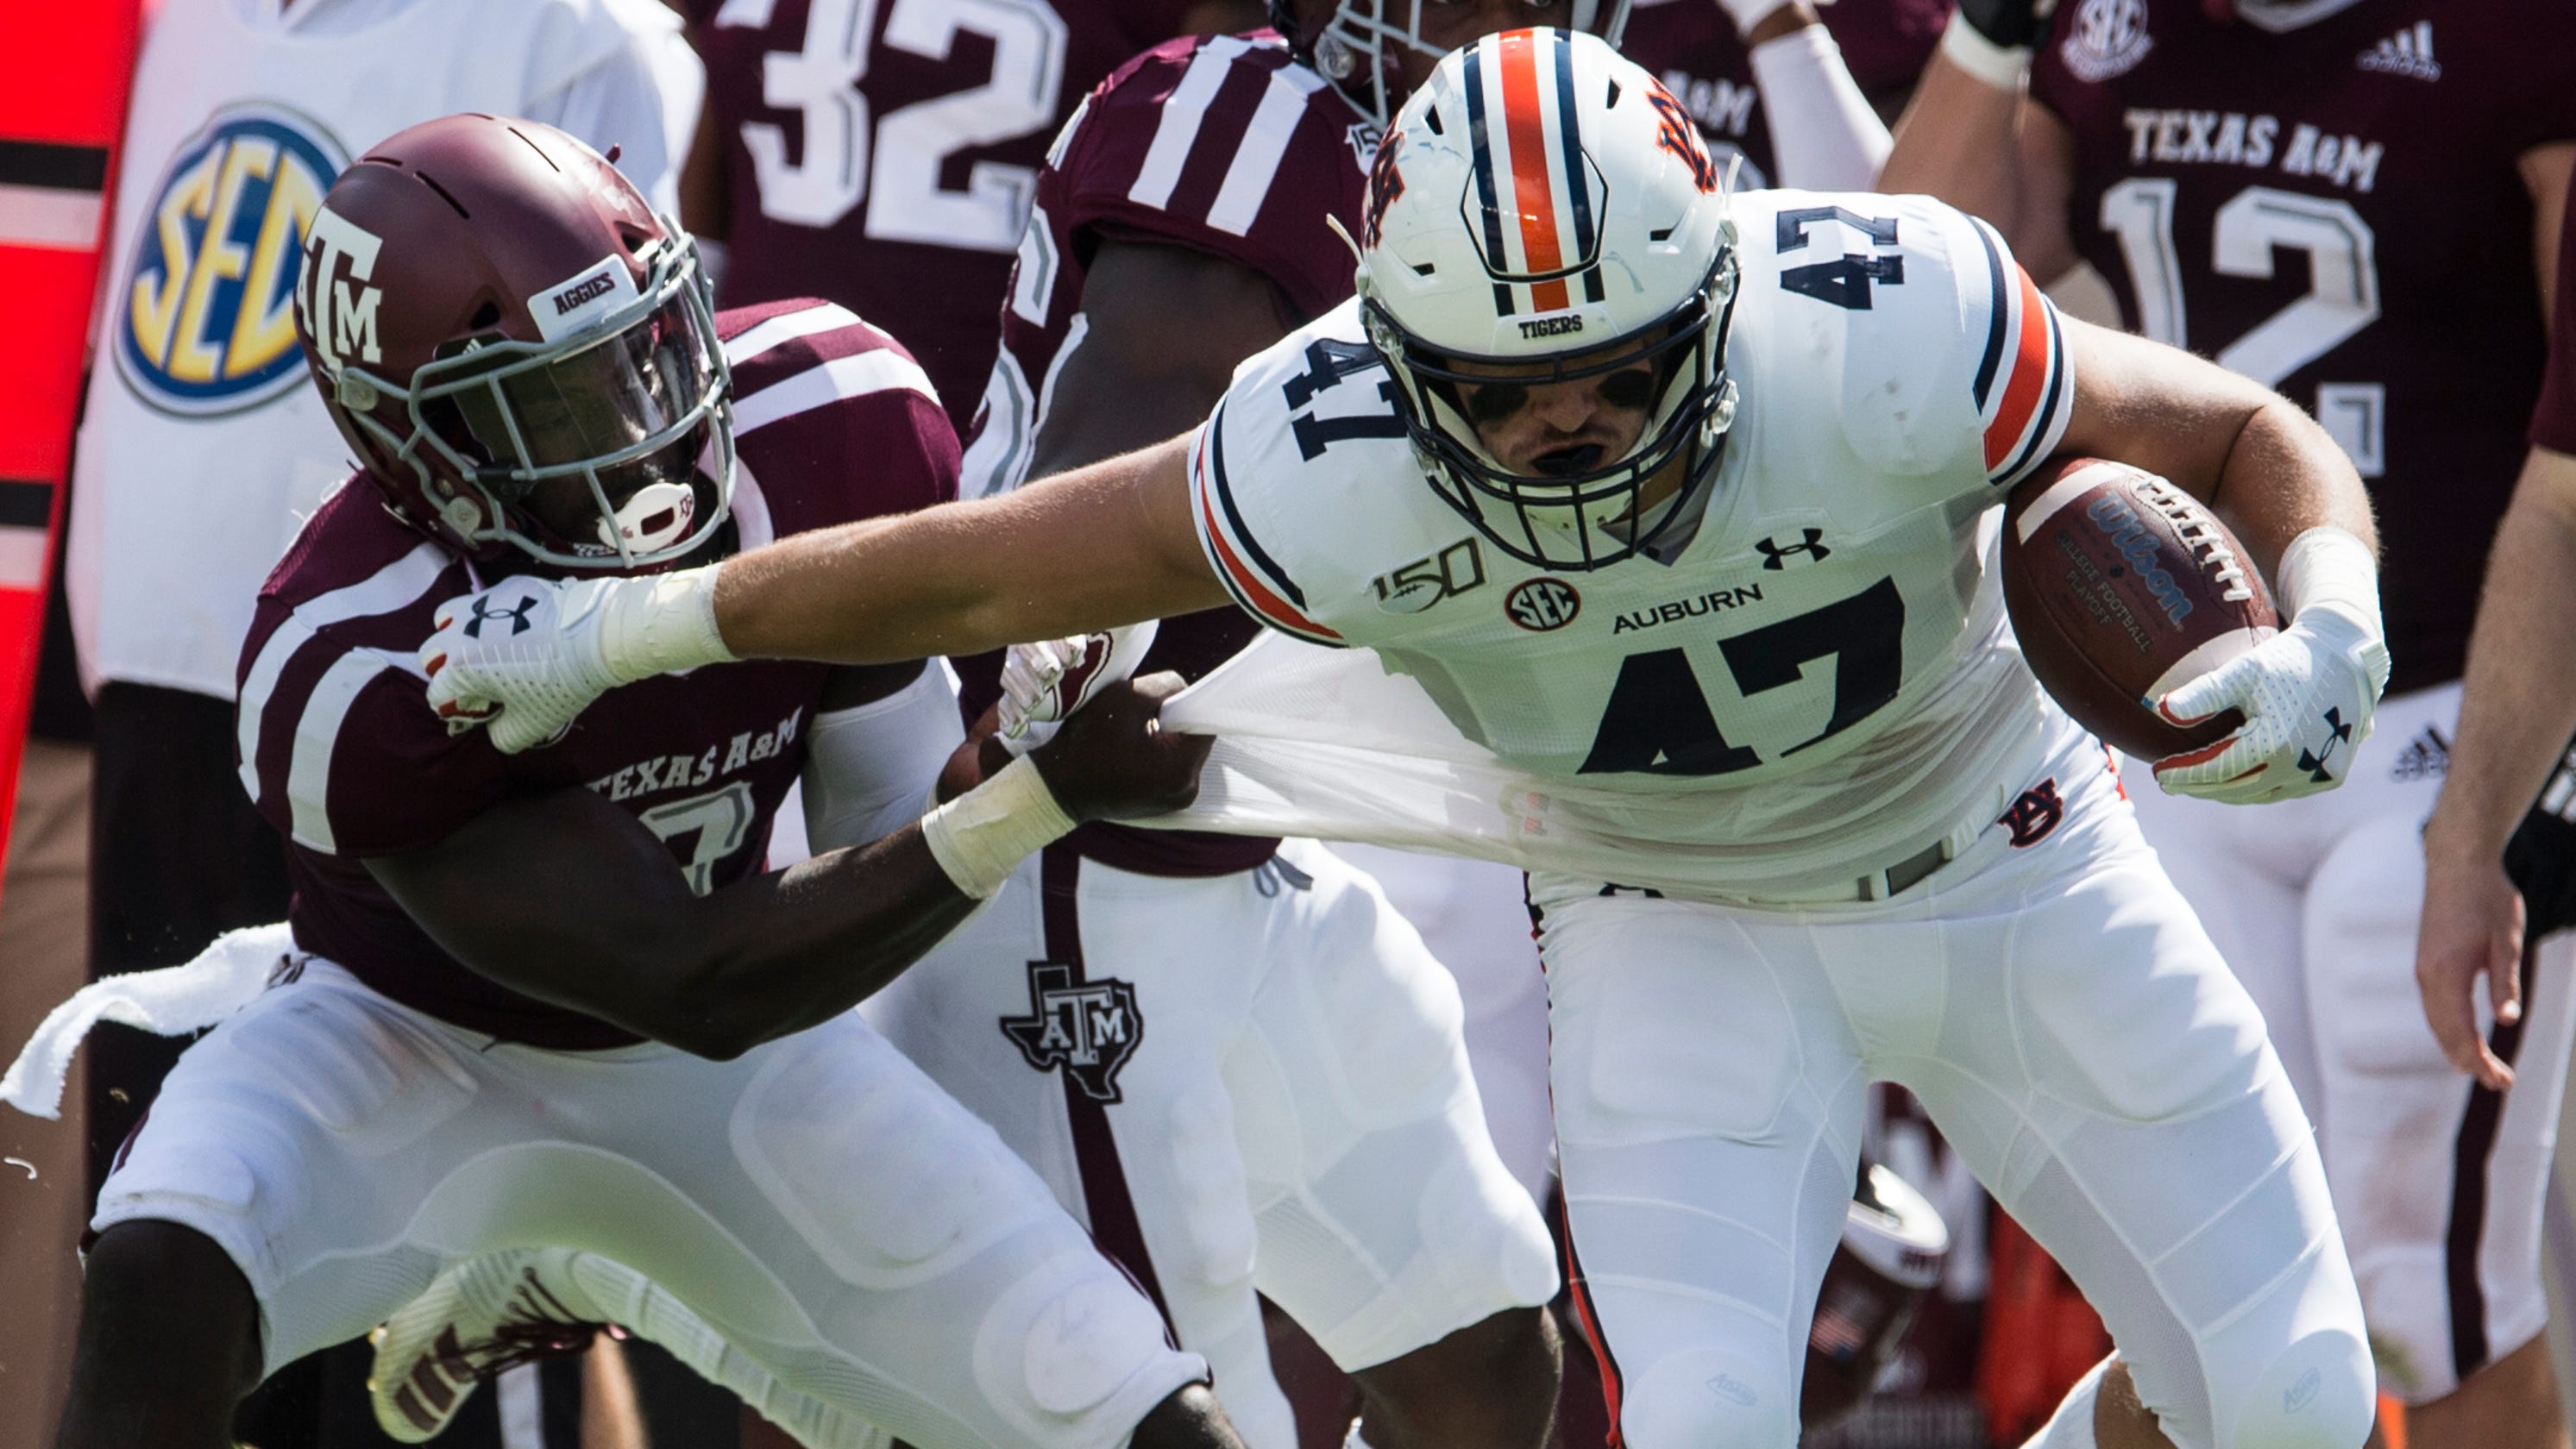 Auburn vs. Texas A&M football video highlights, score